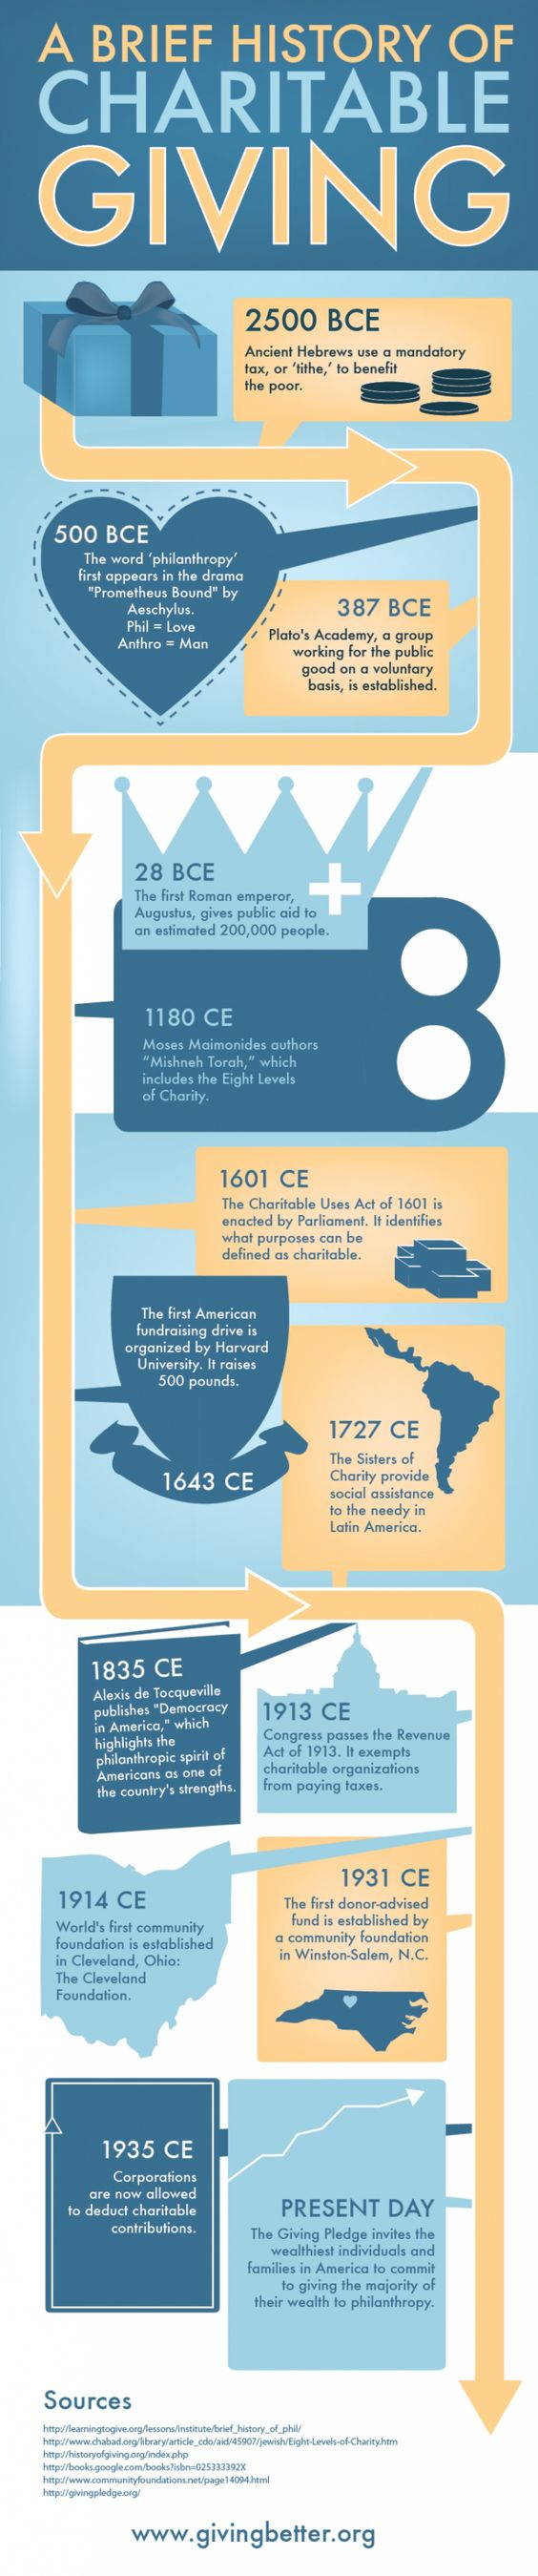 """A Brief History of Charitable Giving"" 